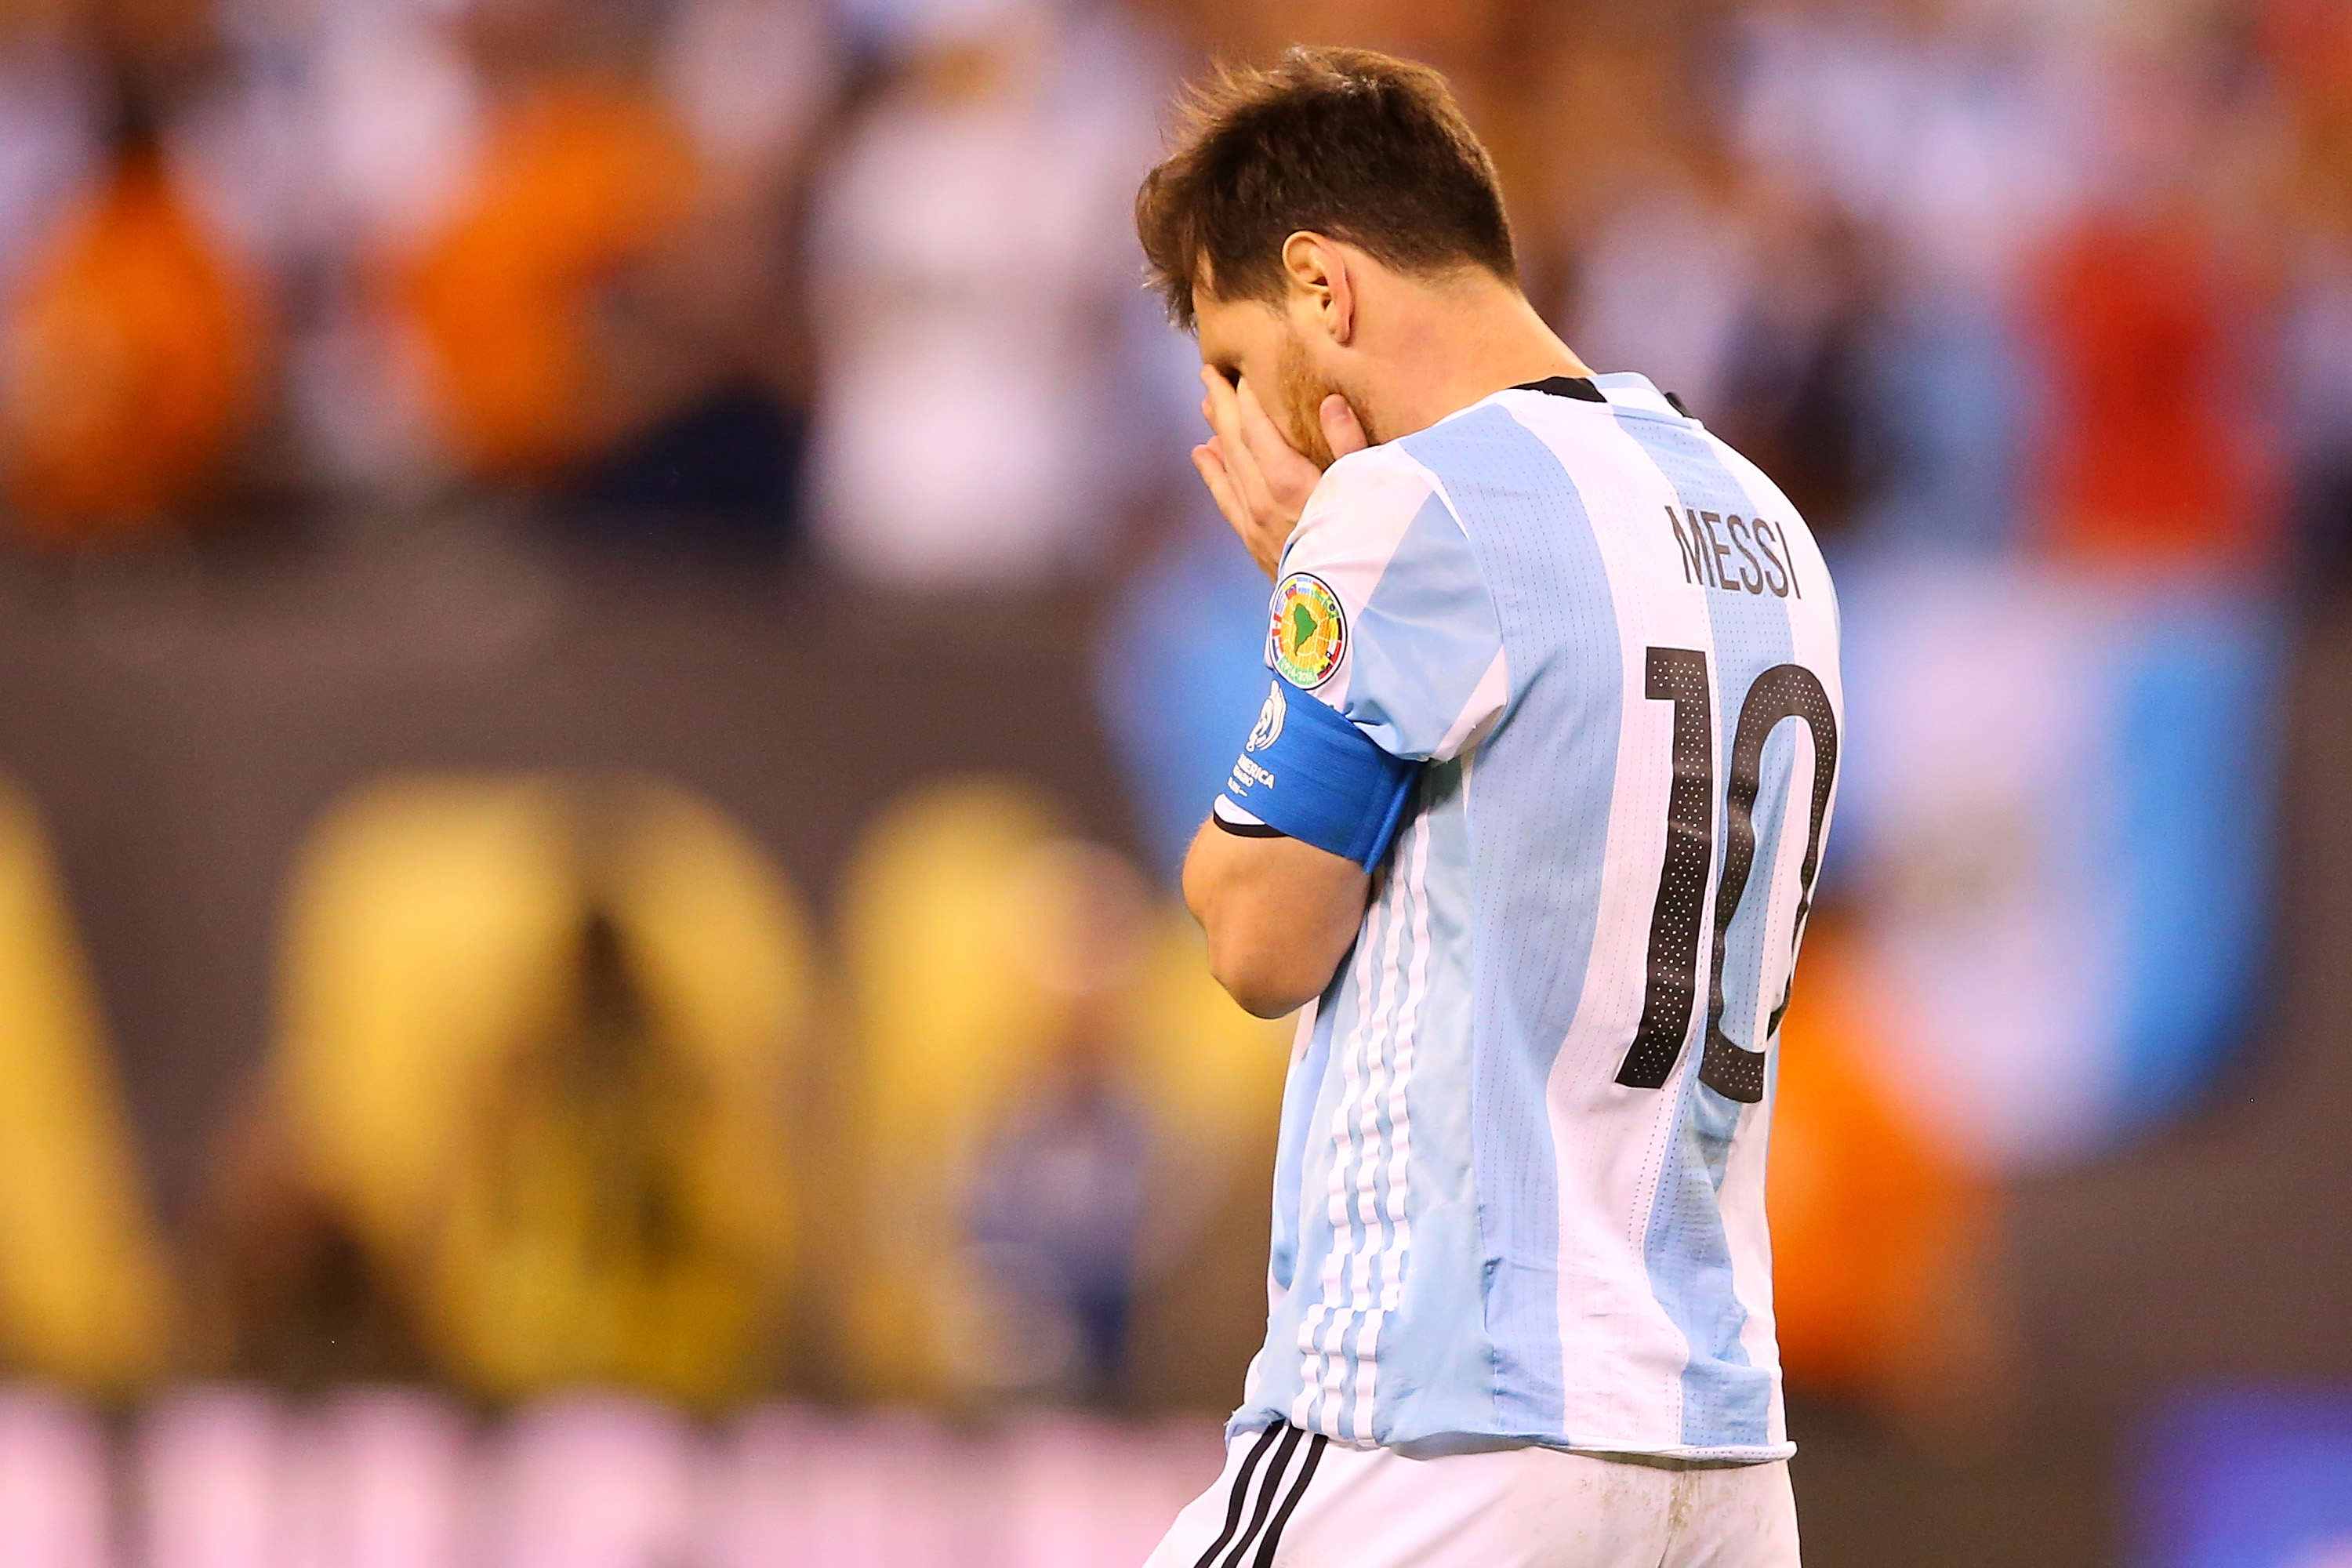 GettyImages 543248604 Lionel Messi Retires From International Football After Copa America Final Defeat